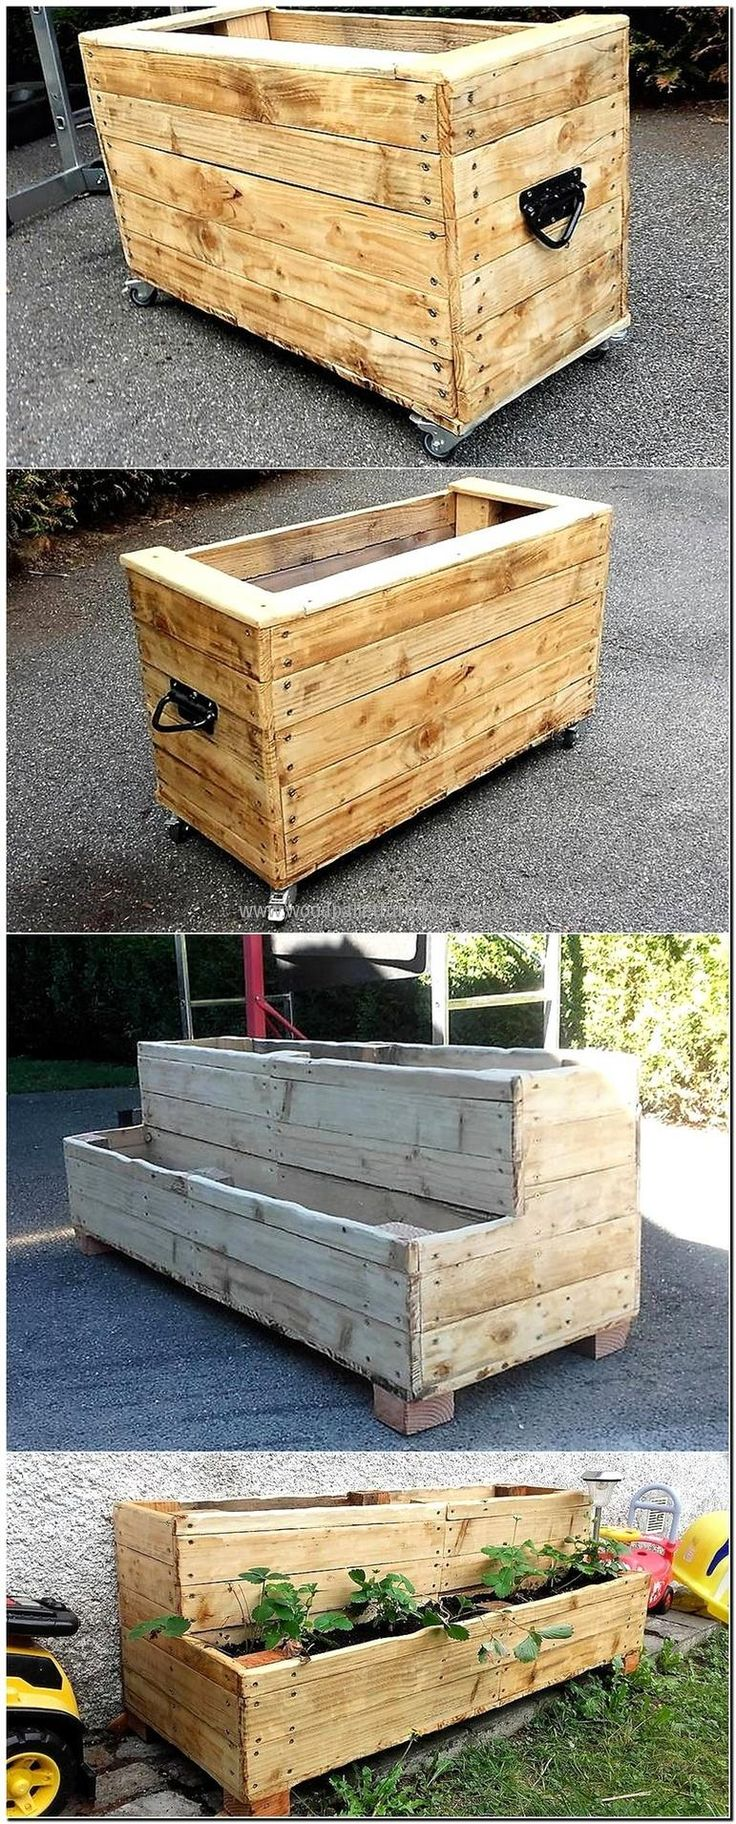 recycled pallet planters ... 100 DIY ways to recycle pallets